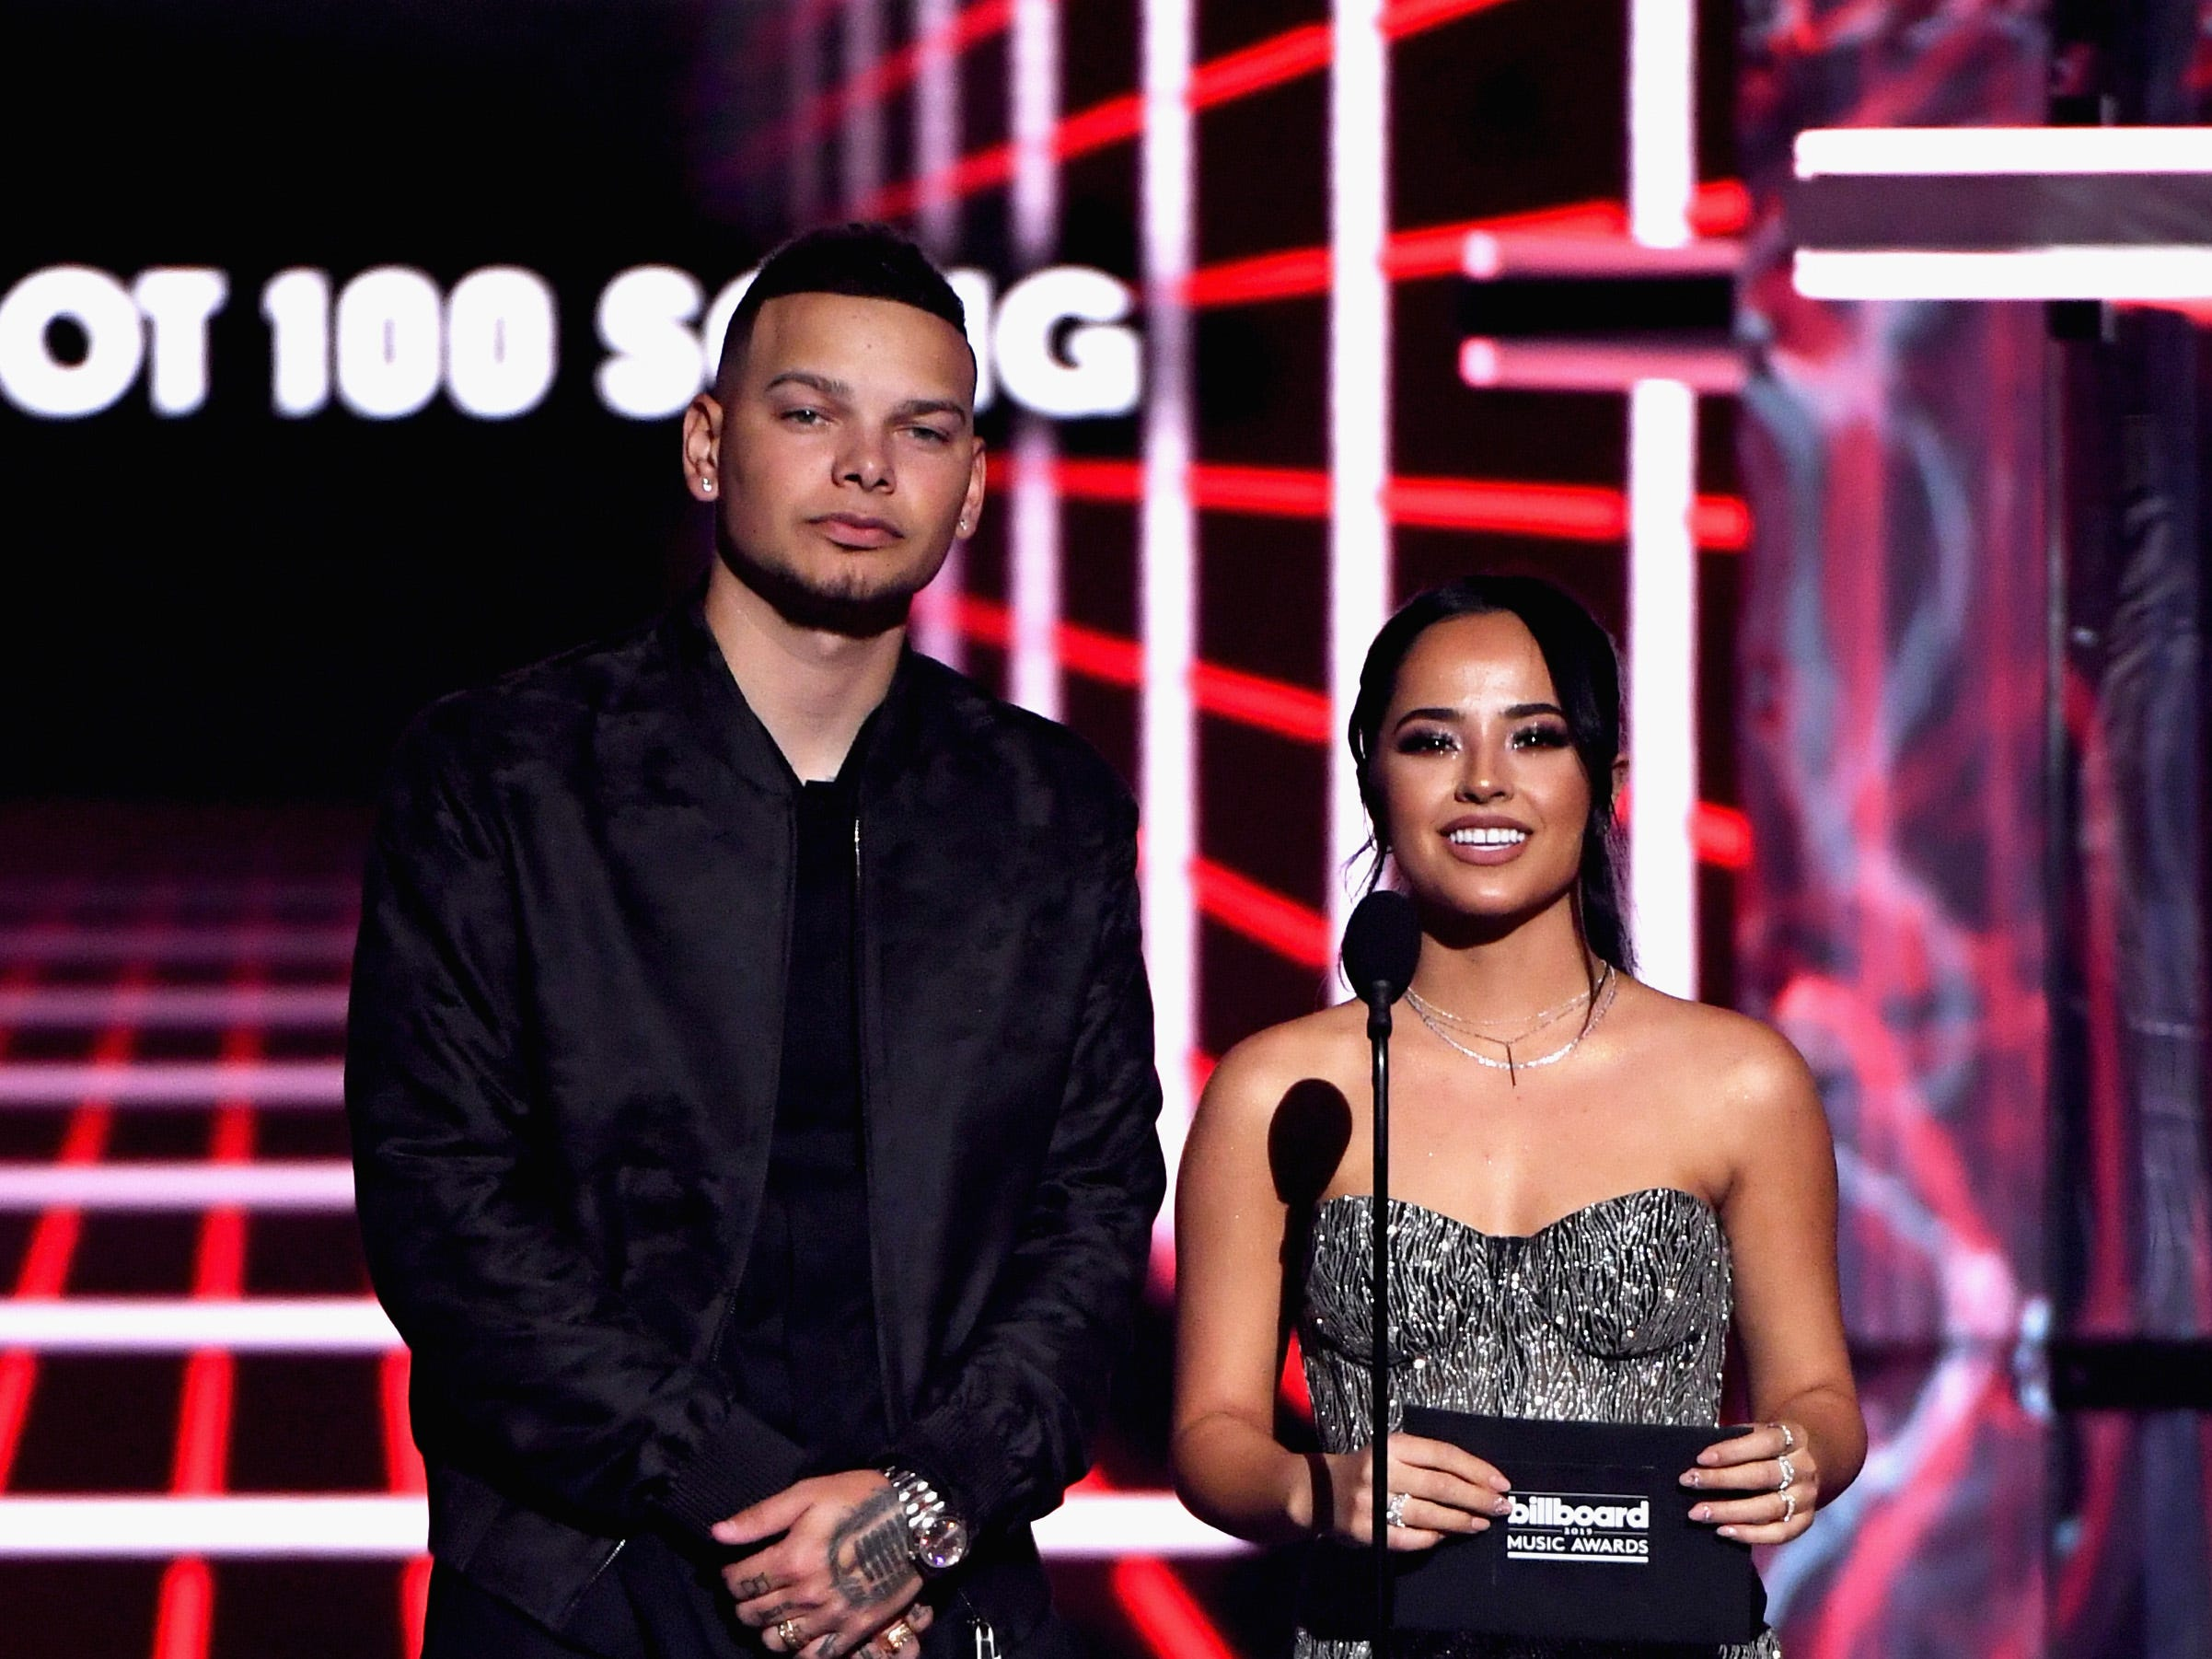 (L-R) Kane Brown and Becky G speak onstage during the 2019 Billboard Music Awards at MGM Grand Garden Arena on May 1, 2019 in Las Vegas, Nevada.